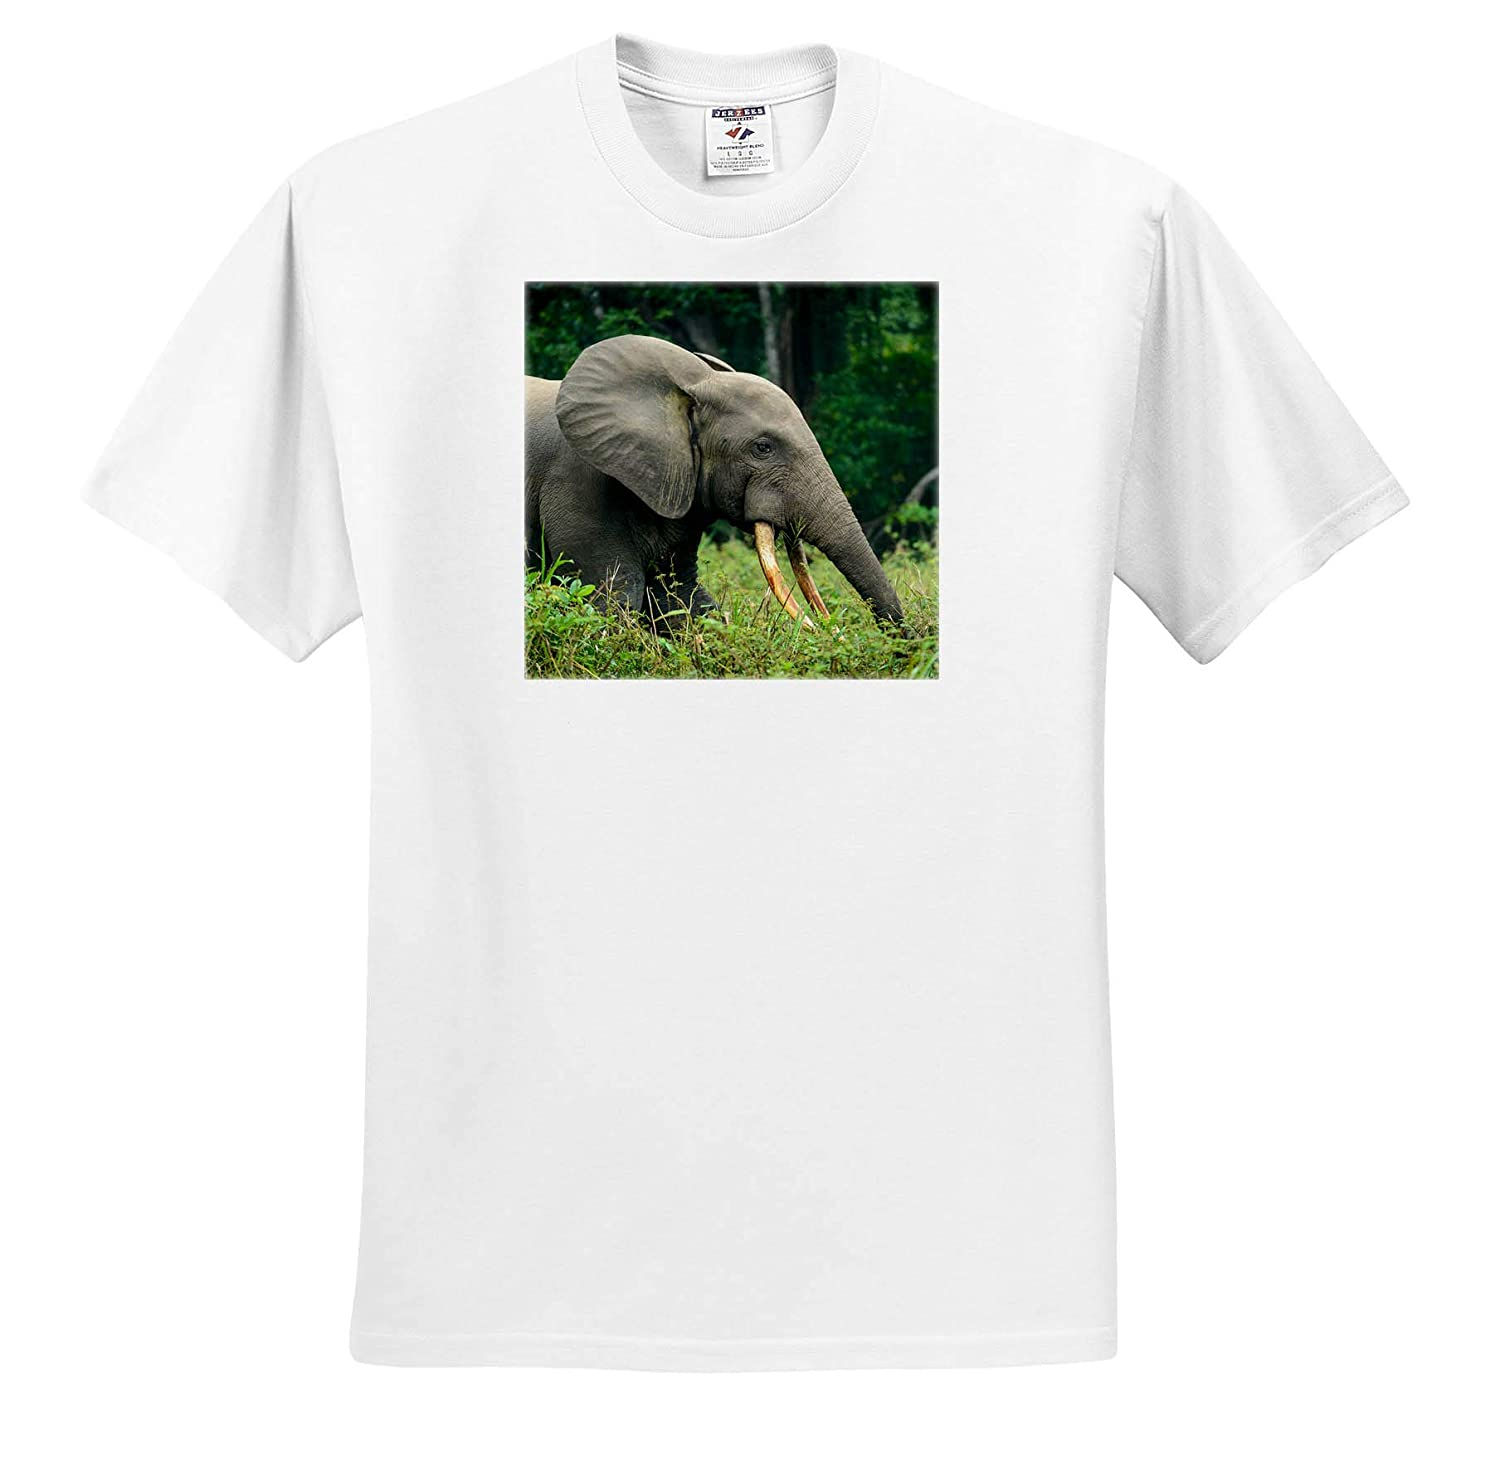 3dRose Danita Delimont African Forest Elephant Elephants - Adult T-Shirt XL Republic of The Congo ts/_310398